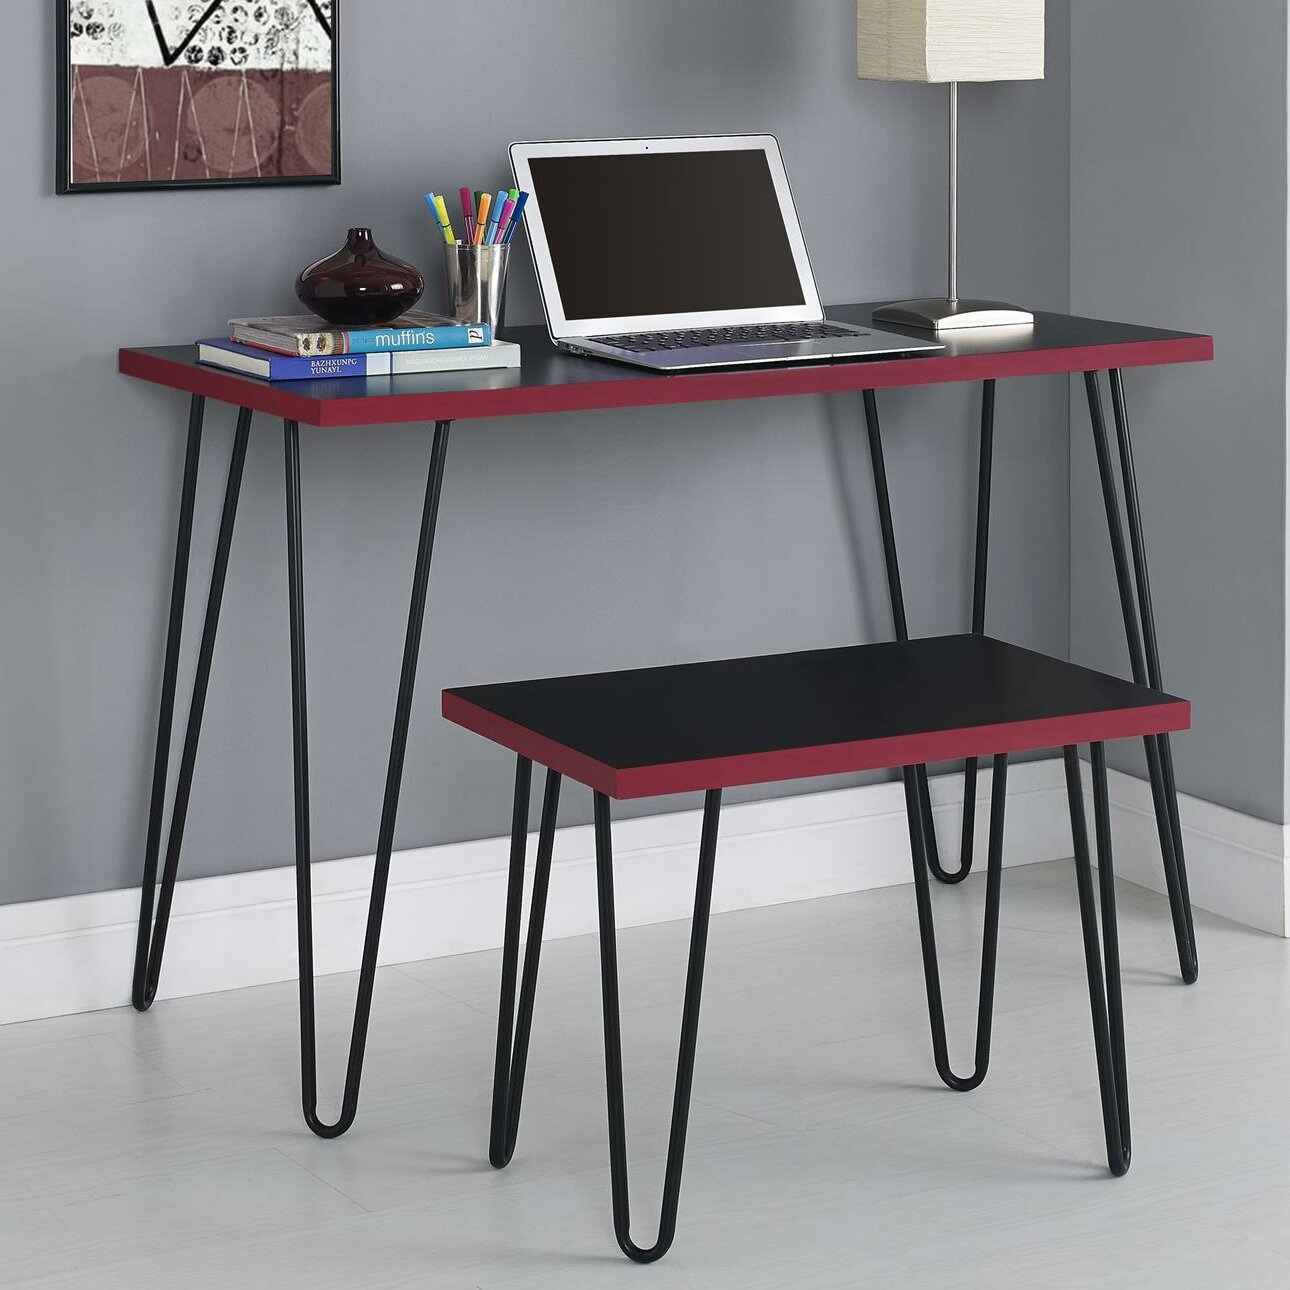 Superb img of Varick Gallery Bergland Writing Desk with Stool & Reviews Wayfair with #773540 color and 1290x1290 pixels